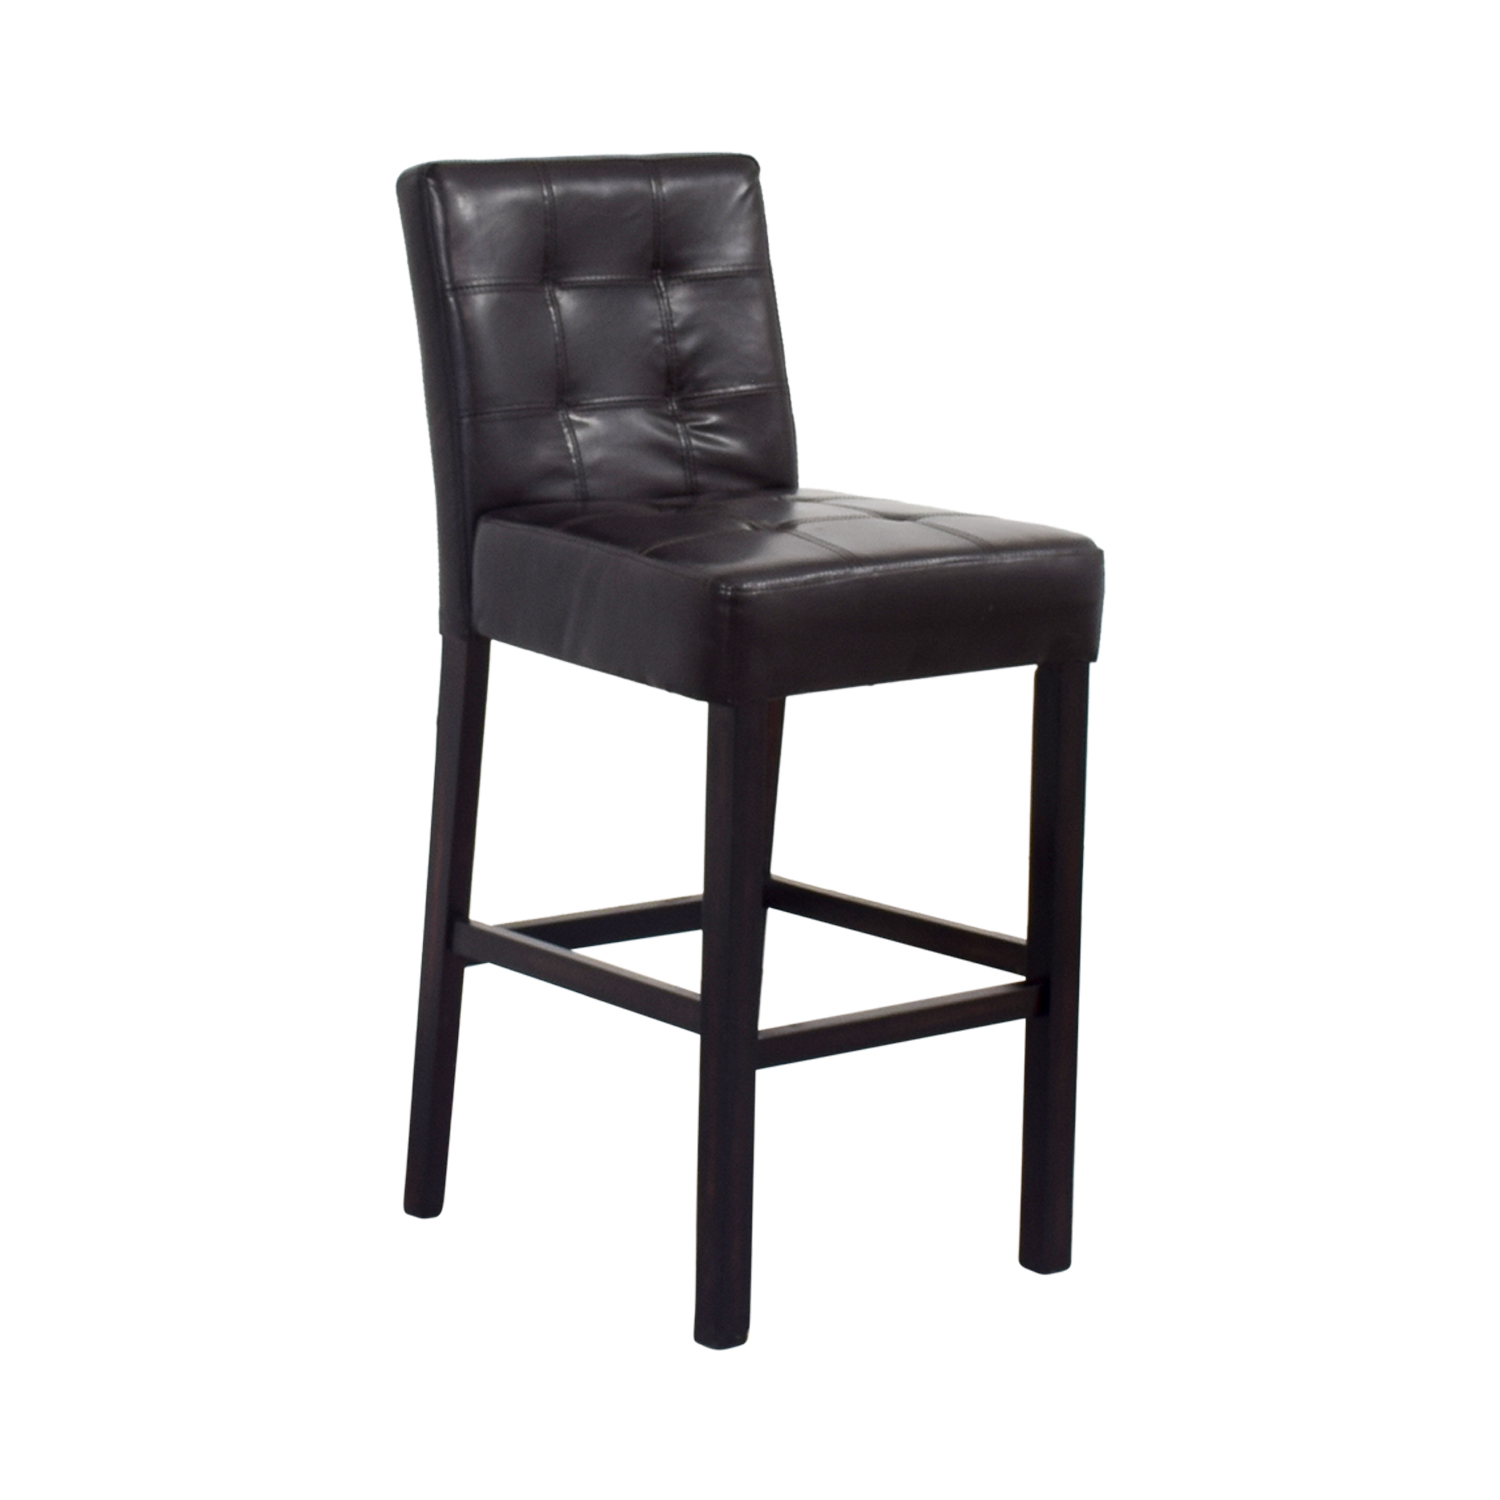 Tufted Bar Height Chair / Chairs